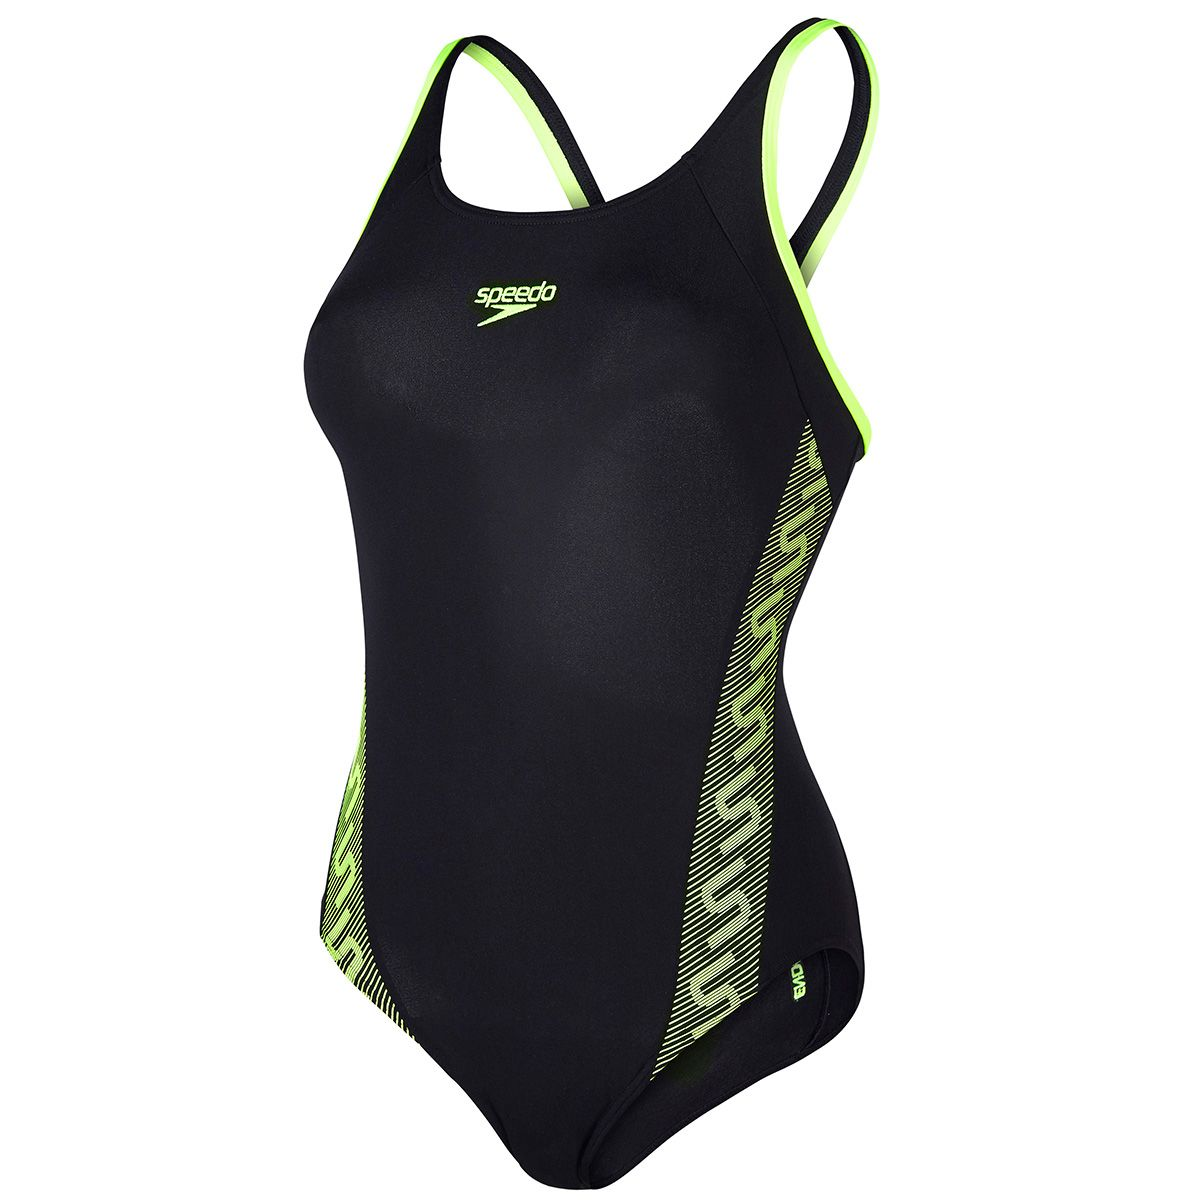 speedo endurance plus monogram muscleback ladies swimsuit